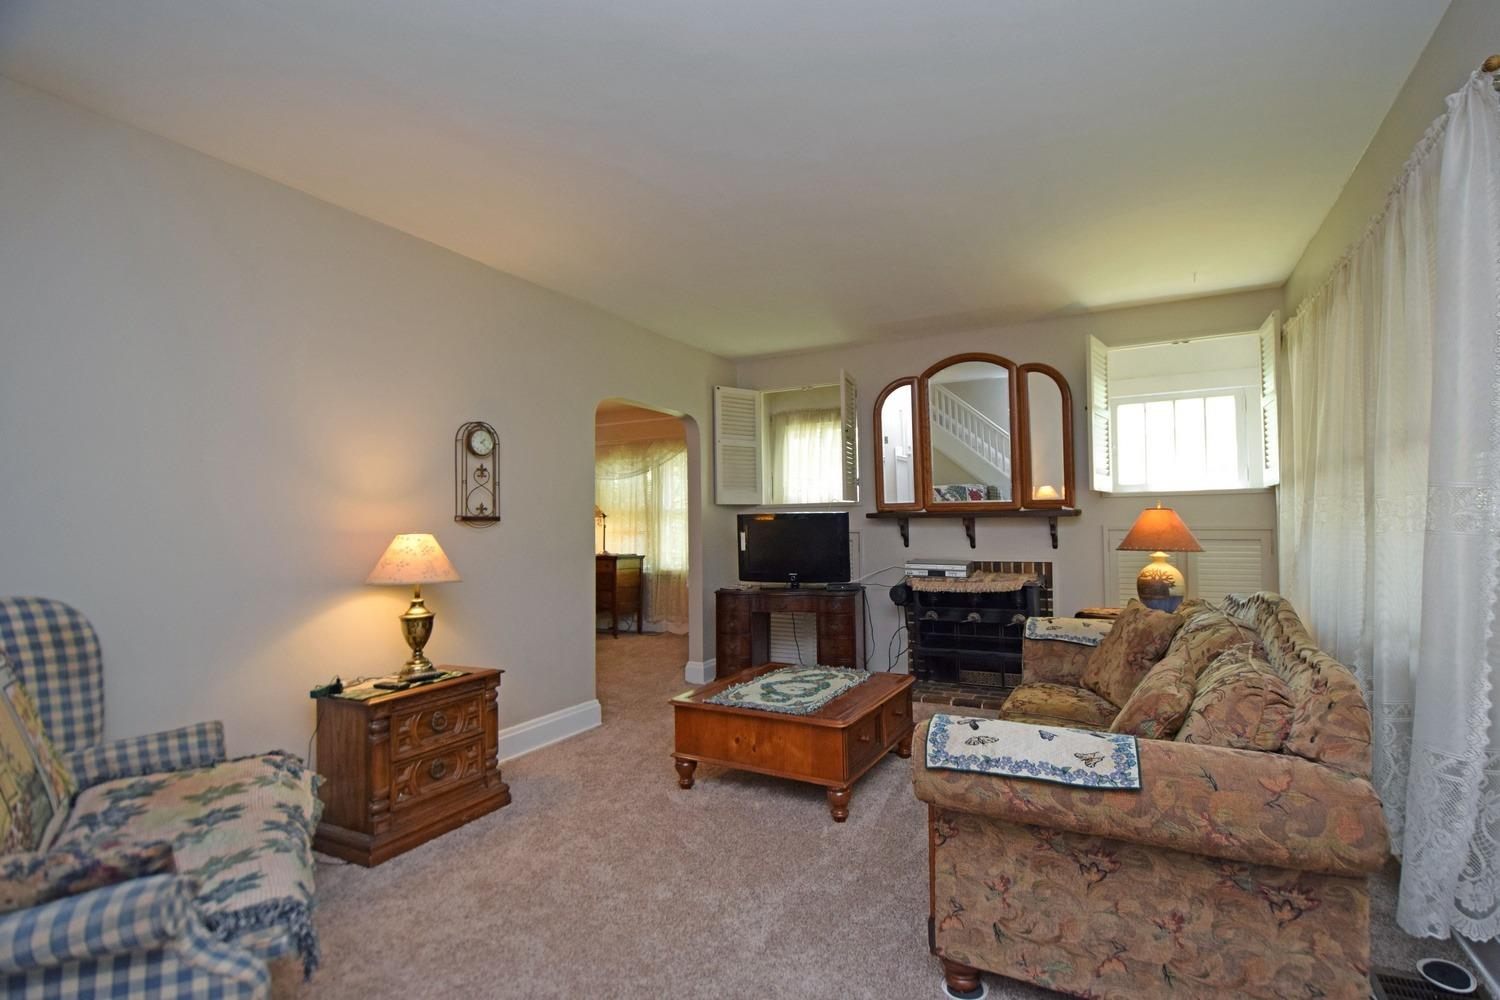 Photo 3 for 2323 W North Bend Rd Mt. Airy, OH 45239